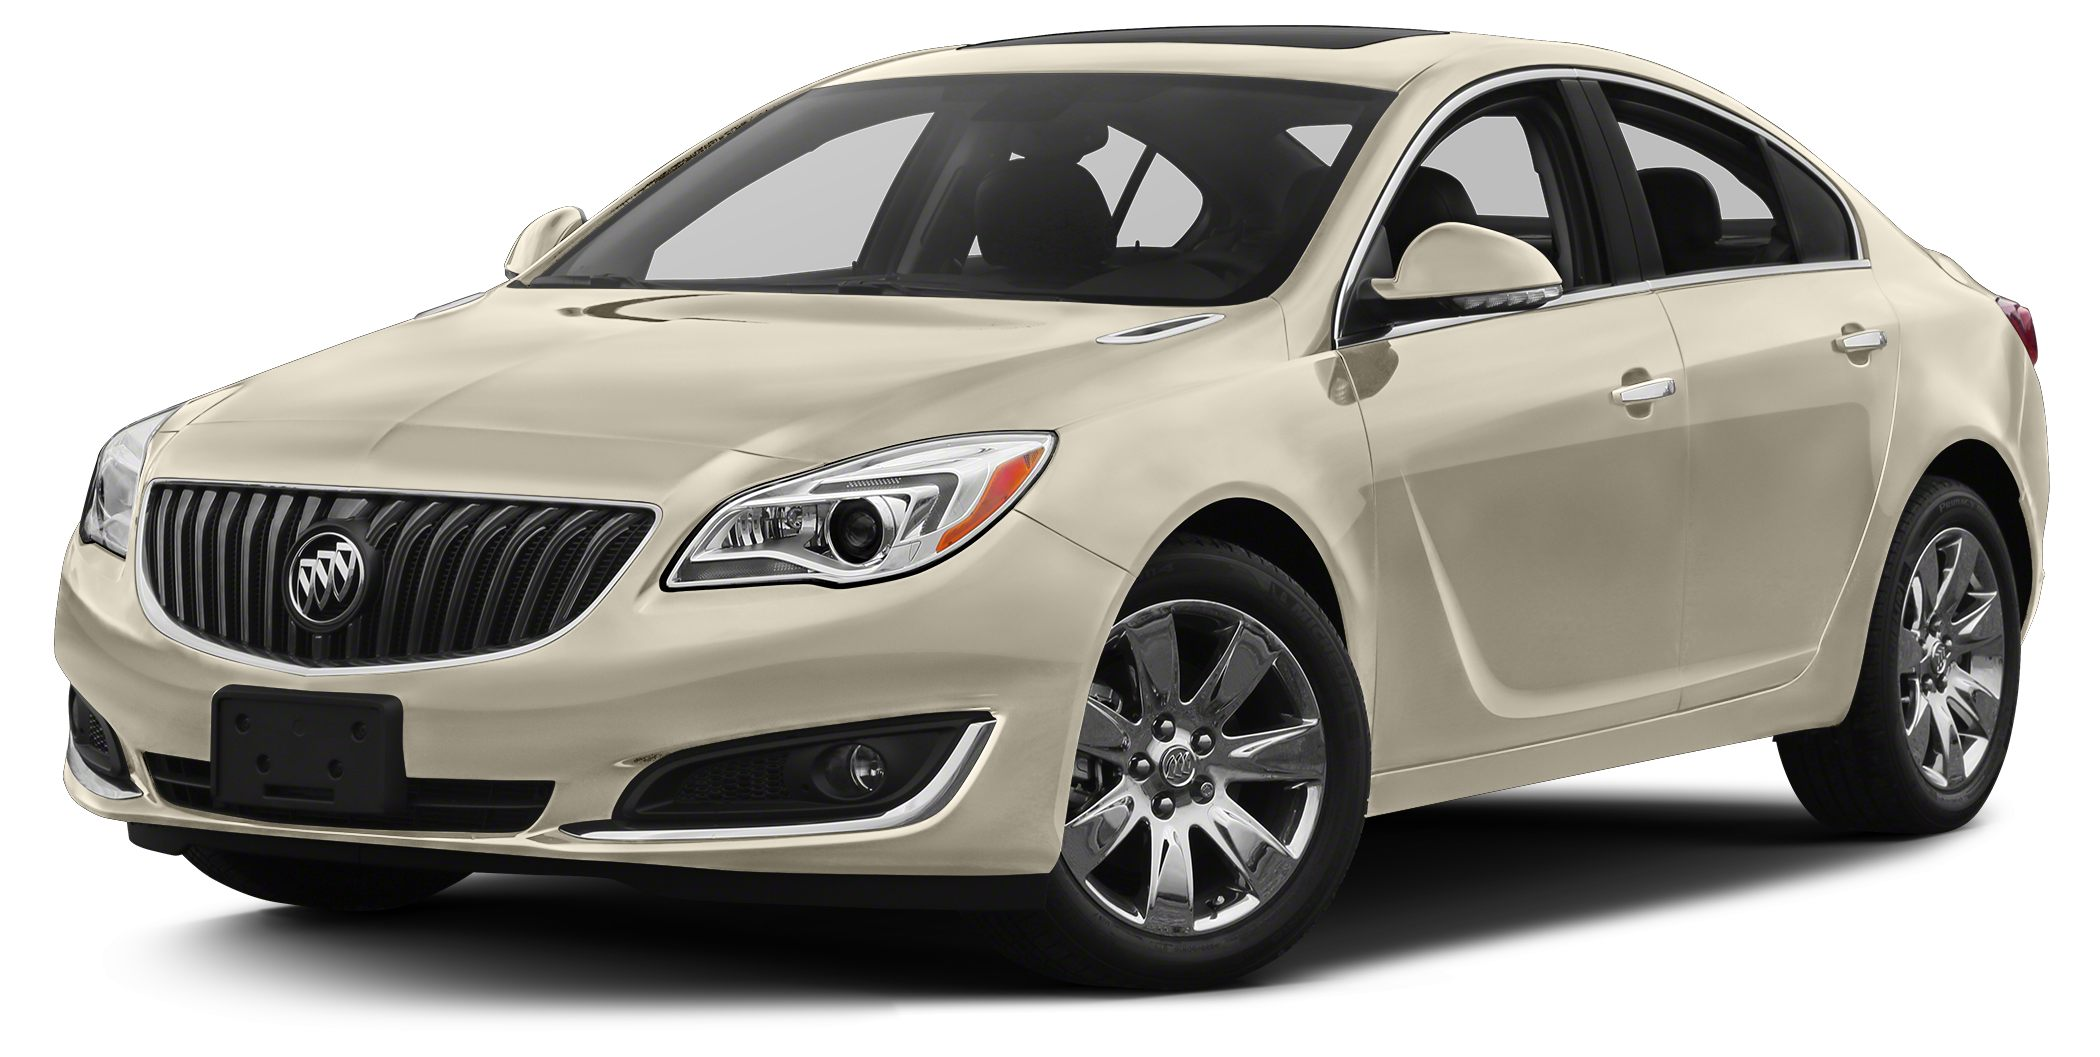 2015 Buick Regal Turbo This rare vehicle is a prime example of automotive engineering perfected T